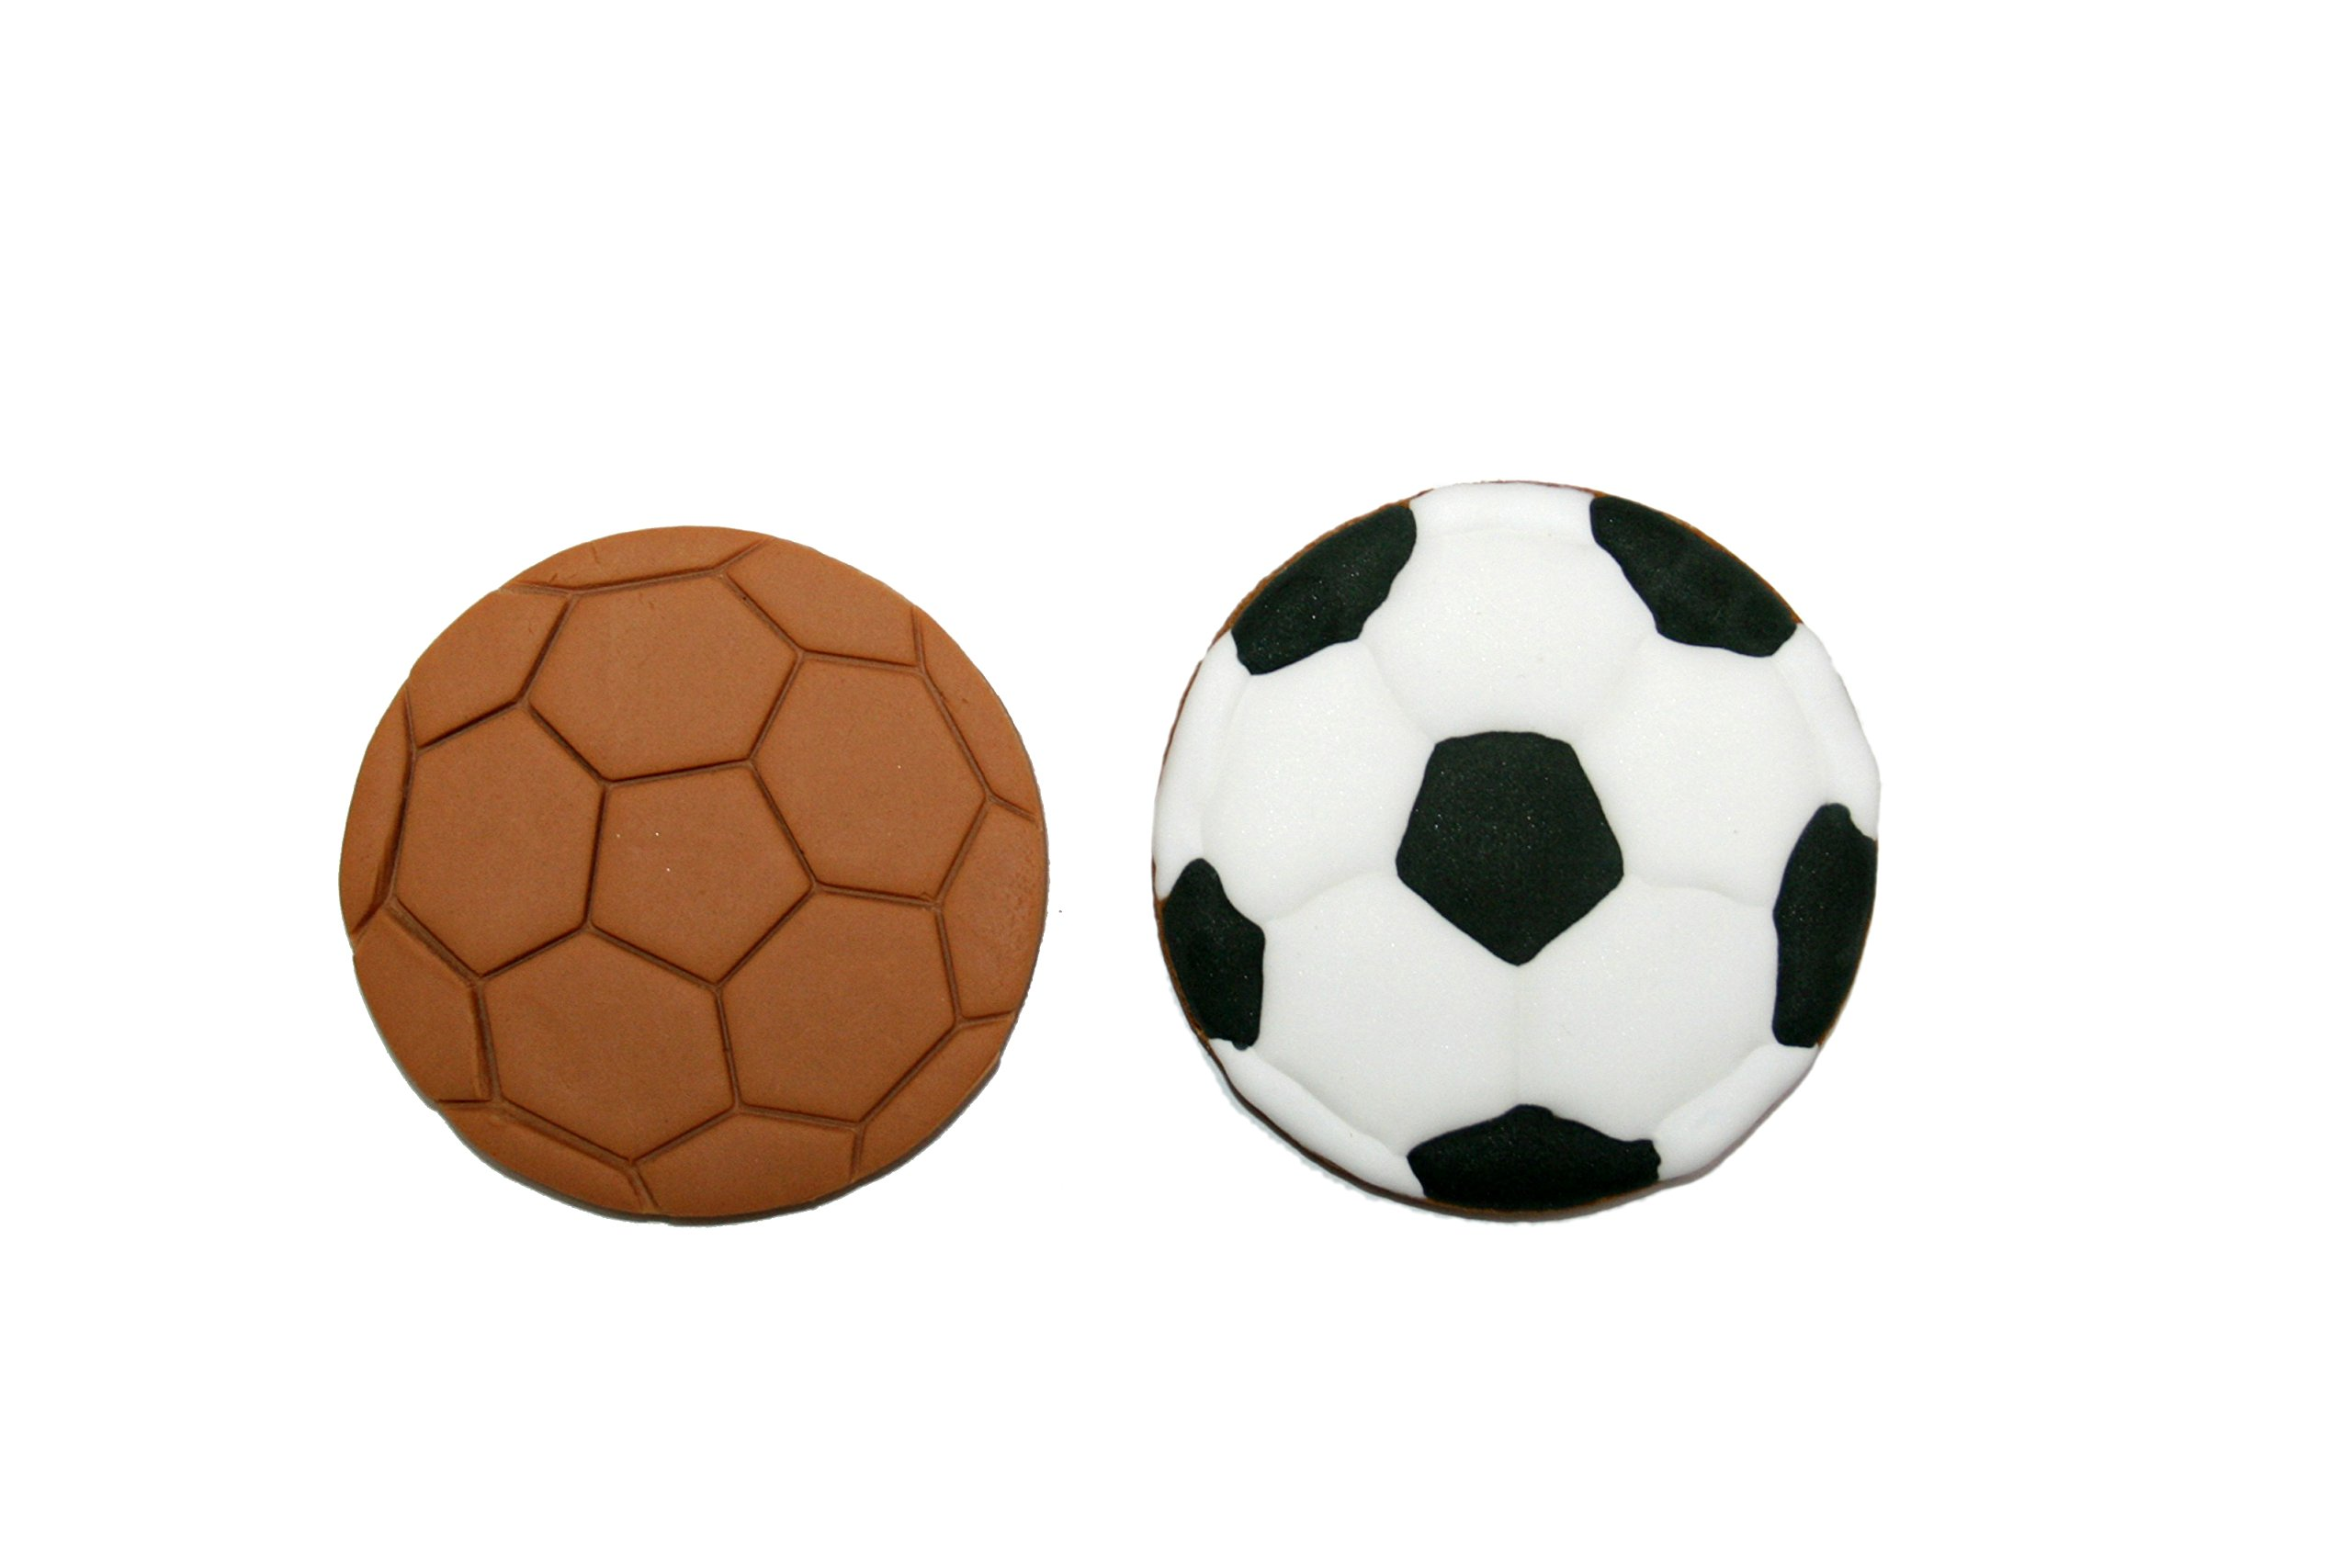 Soccer Ball Cookie Cutter 2 Approx. 3 inches wide by 3 inches tall HANDWASH ONLY Plastic-PLA